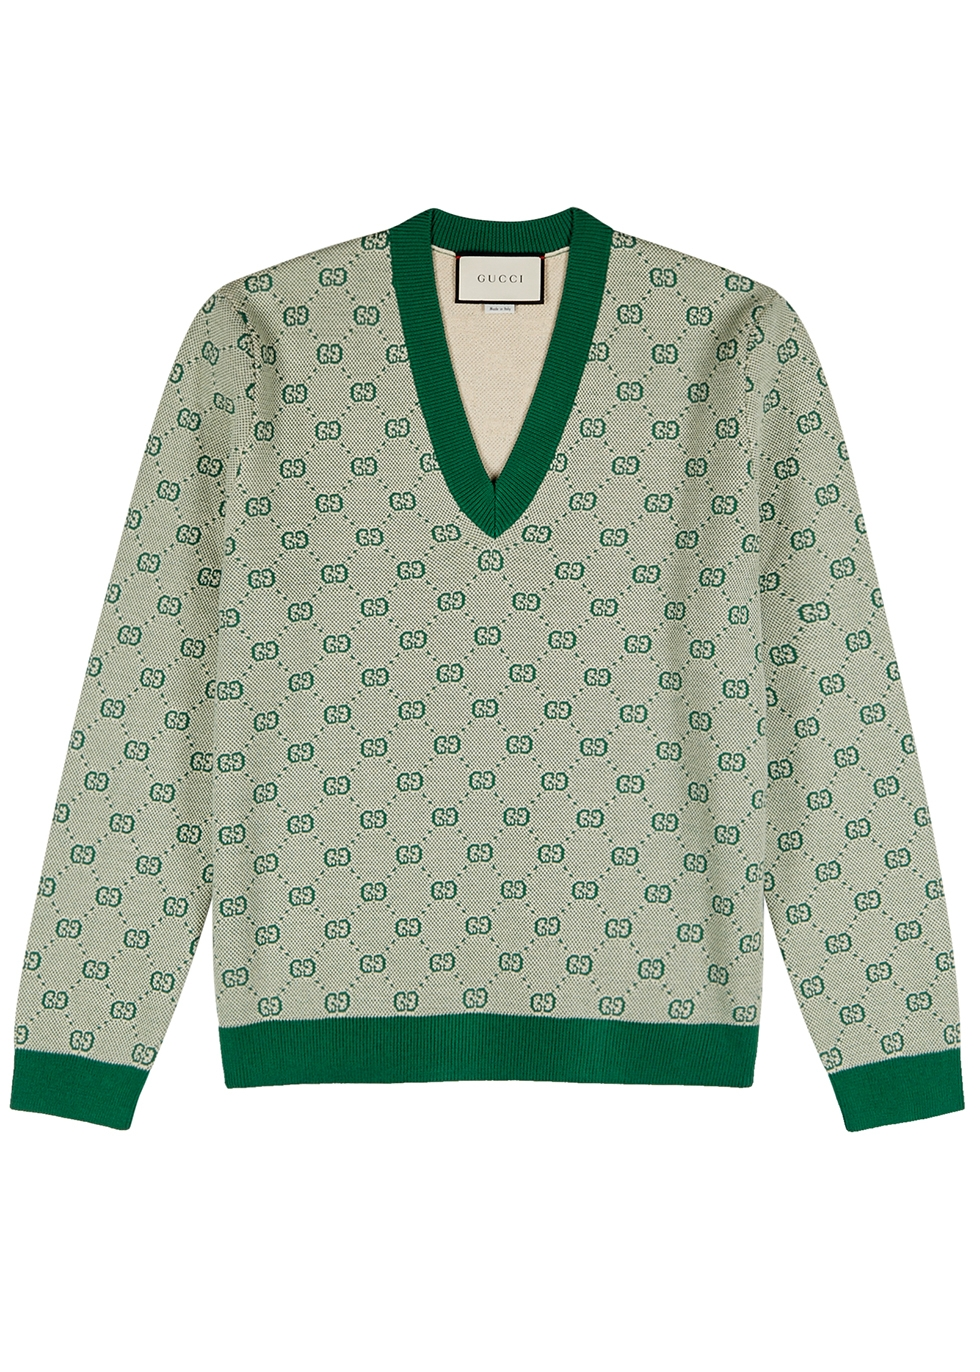 dde3dcafb99 Gucci Clothing - Mens - Harvey Nichols